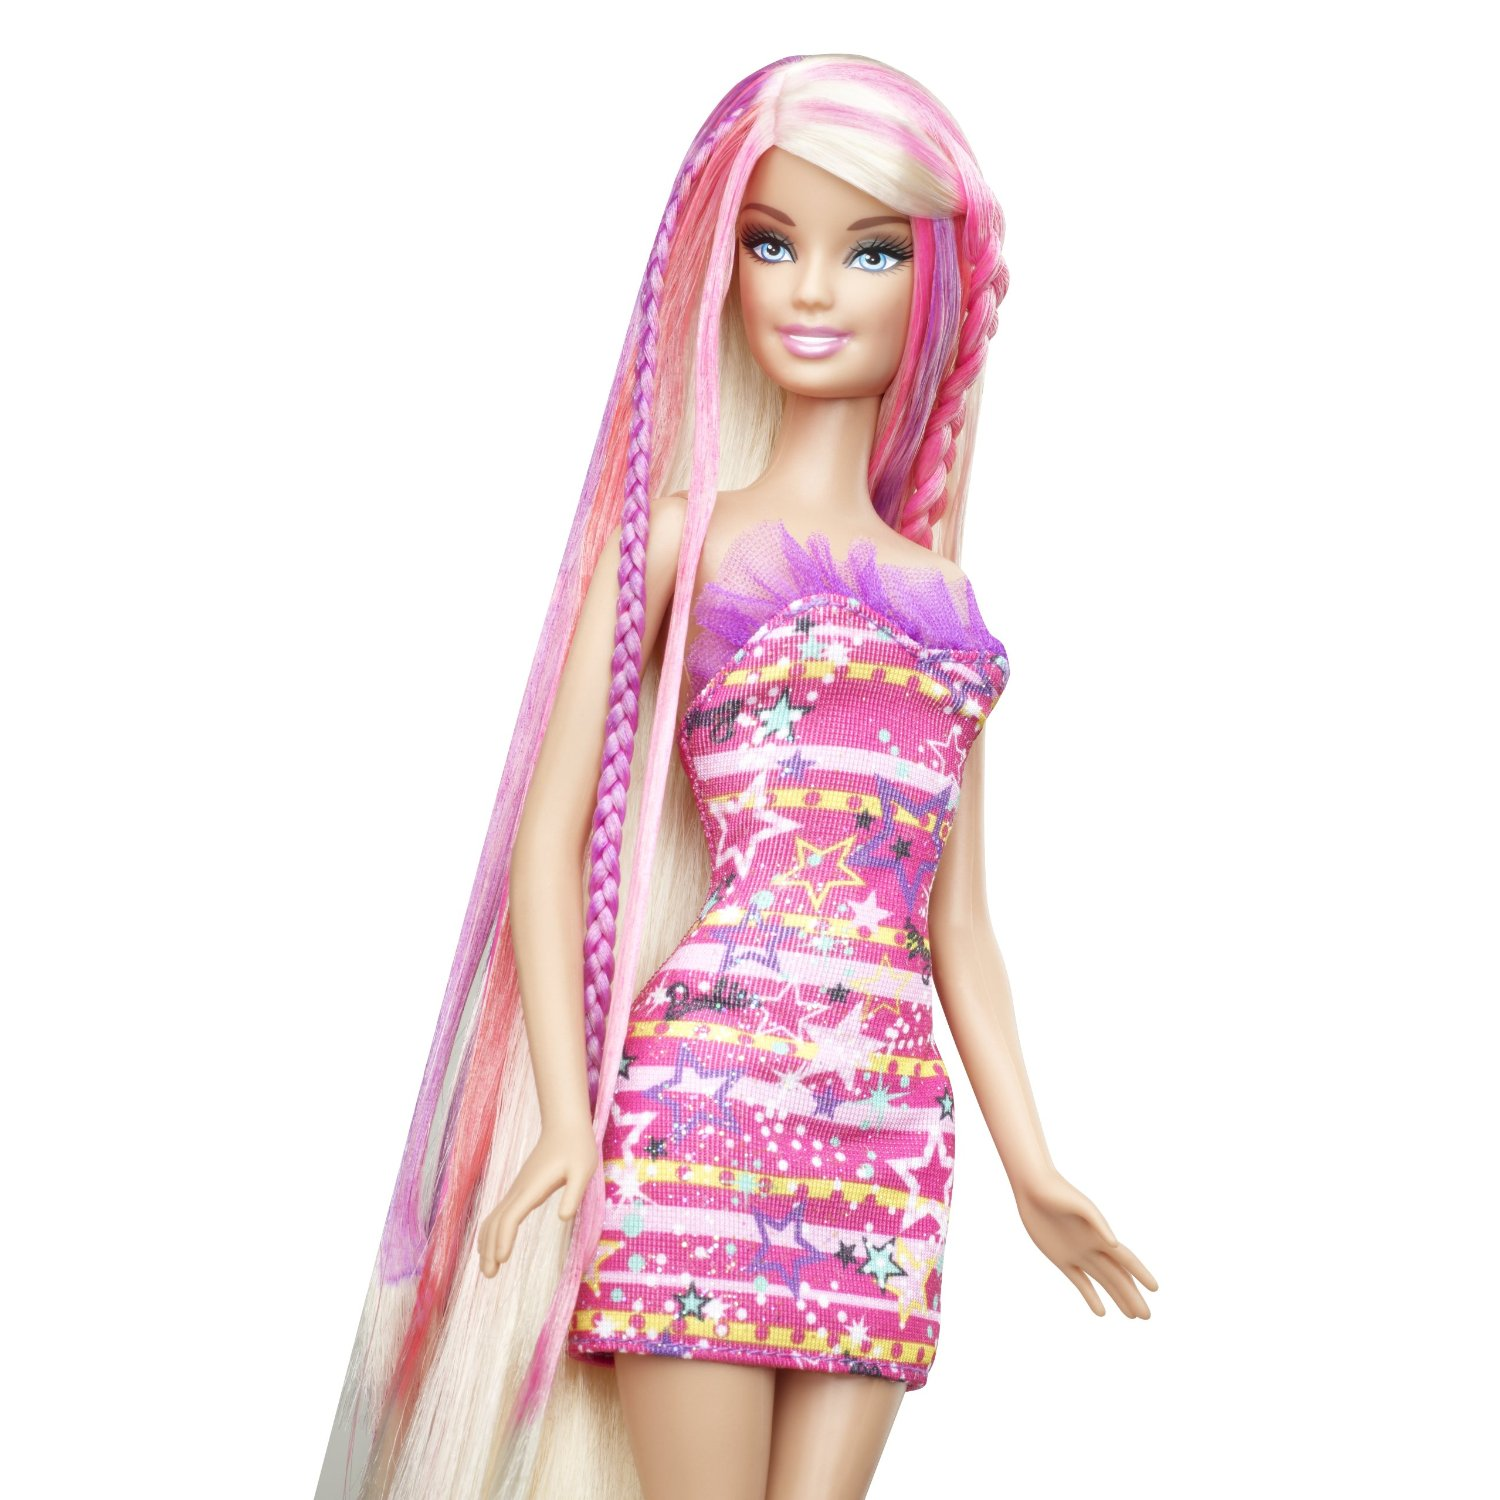 Barbie Hair Tastic Color Design Salon Doll Toy Set By